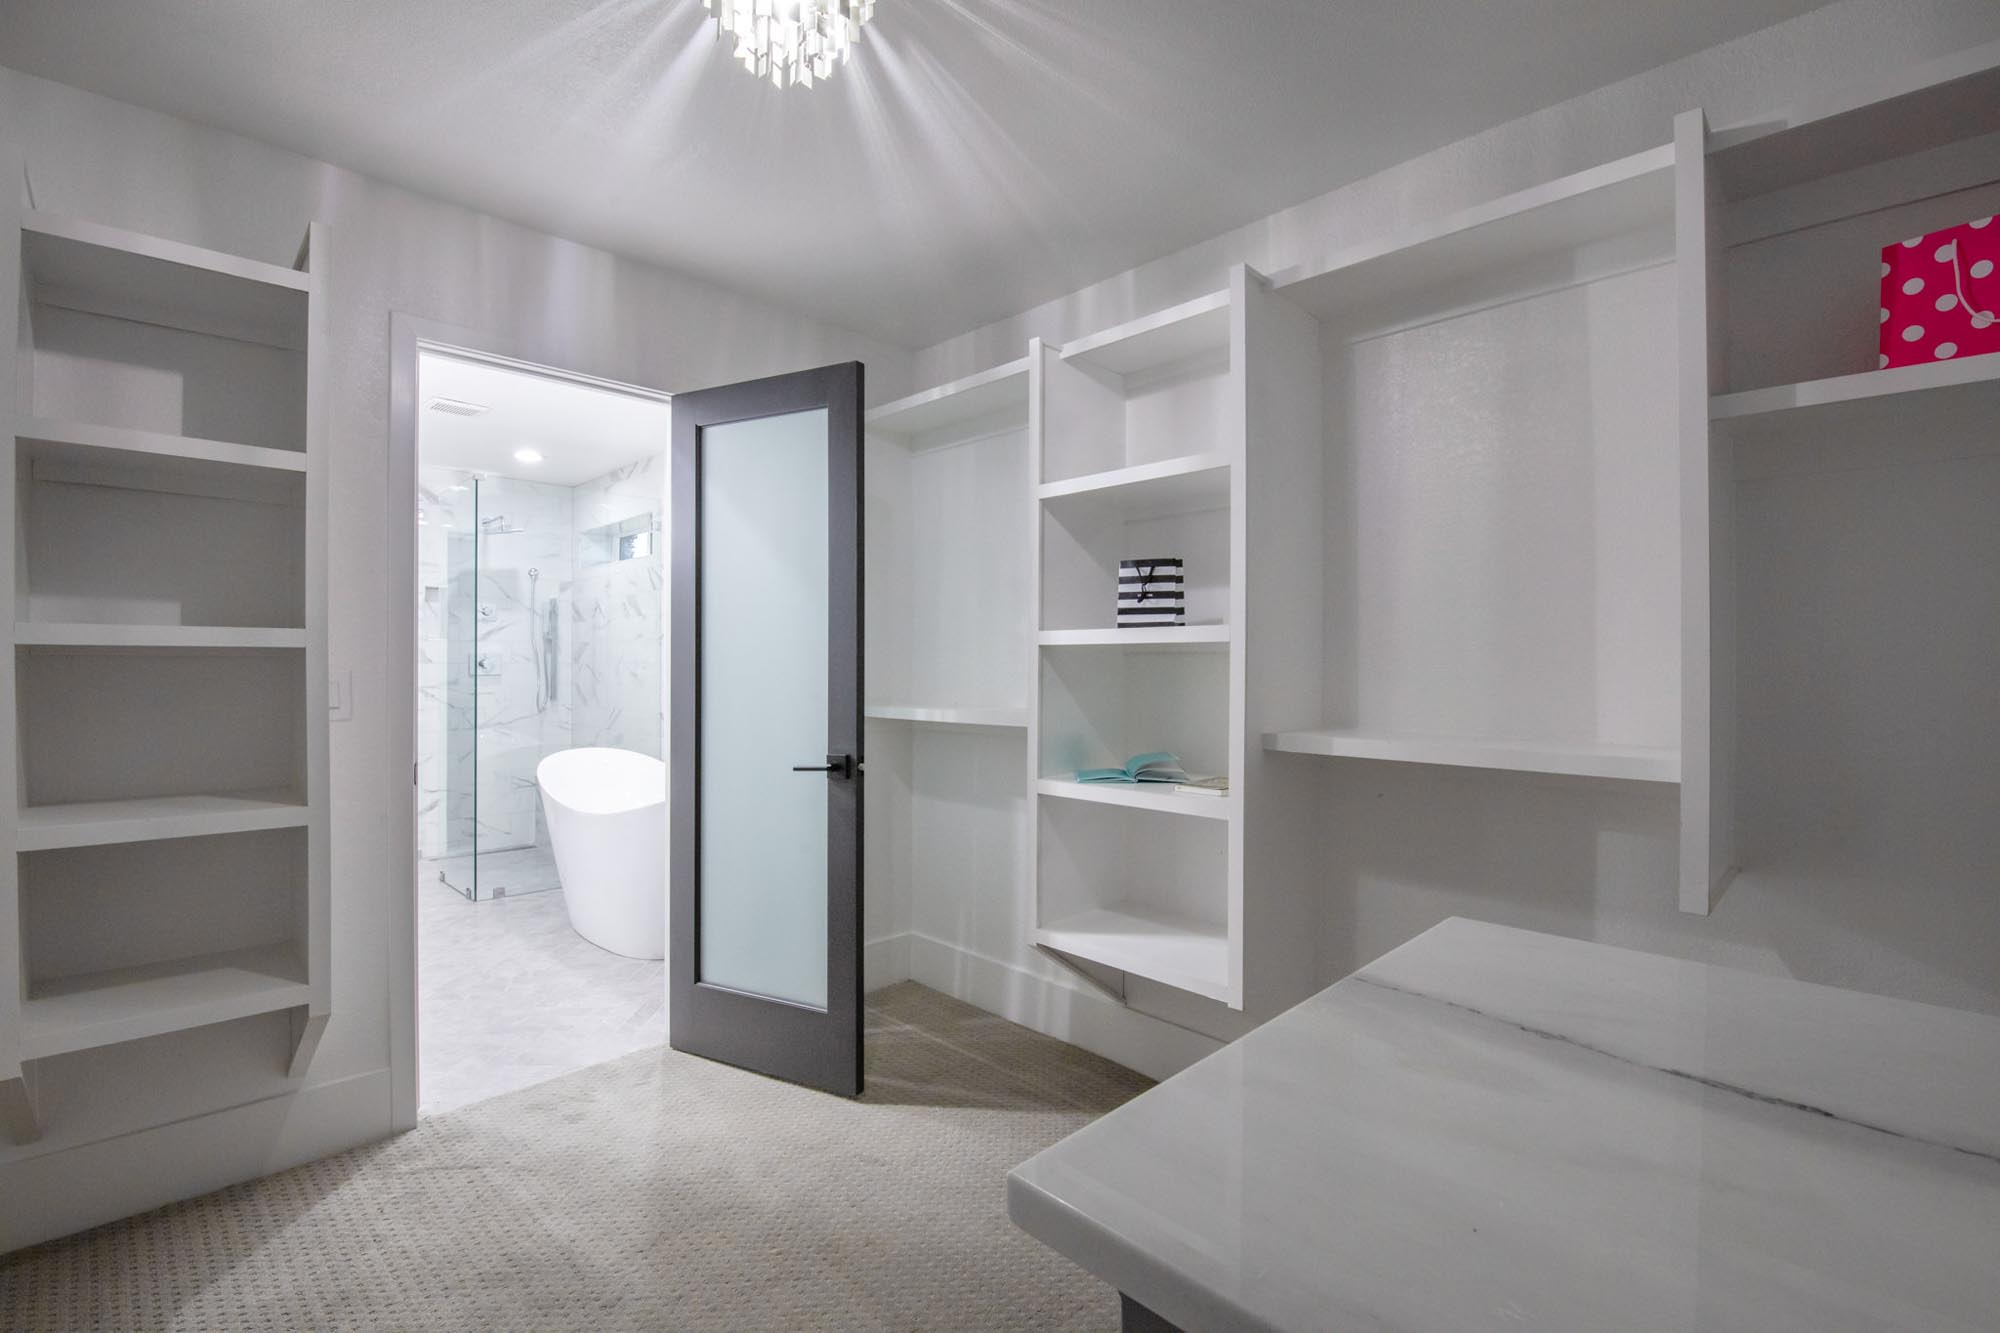 Room with white shelves and entryway to bathroom